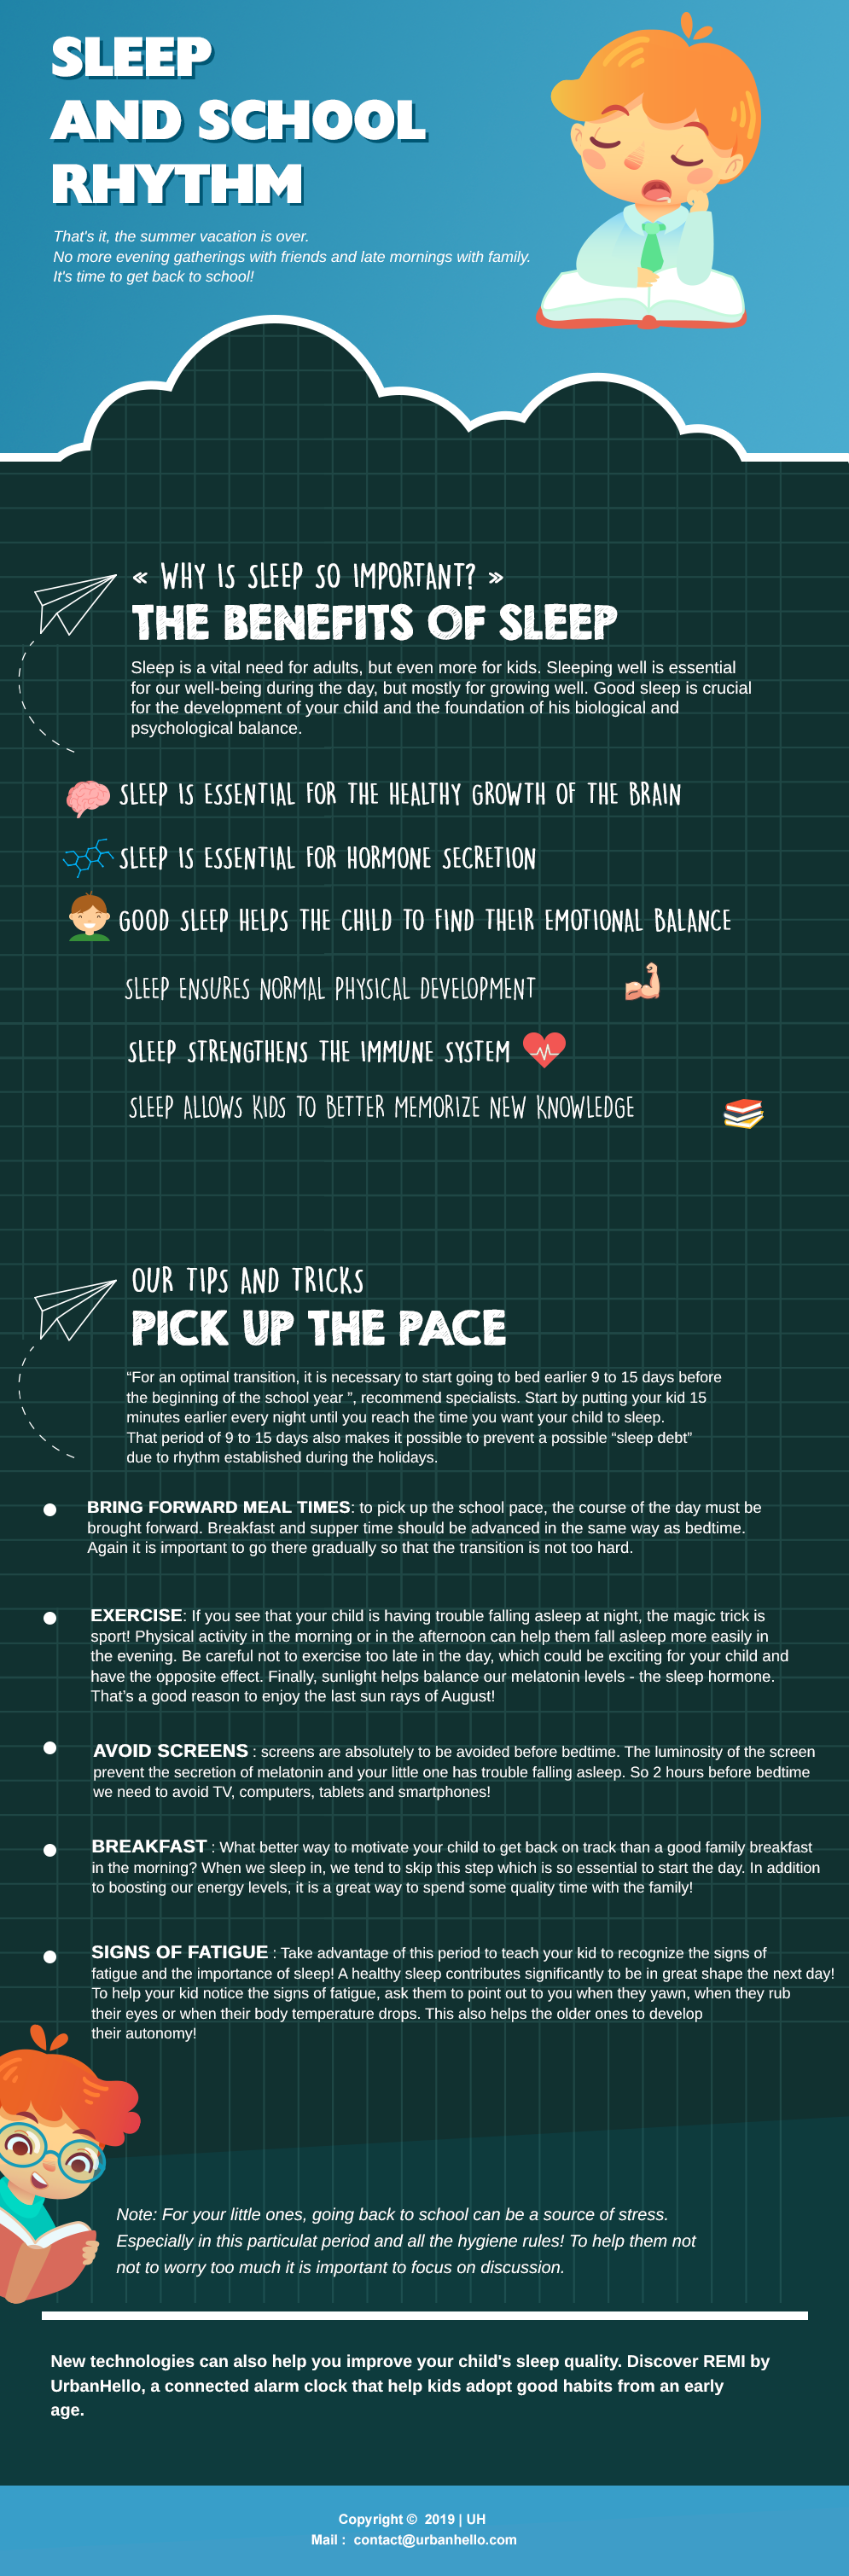 Infographic - Back to school - How to pick up the pace !